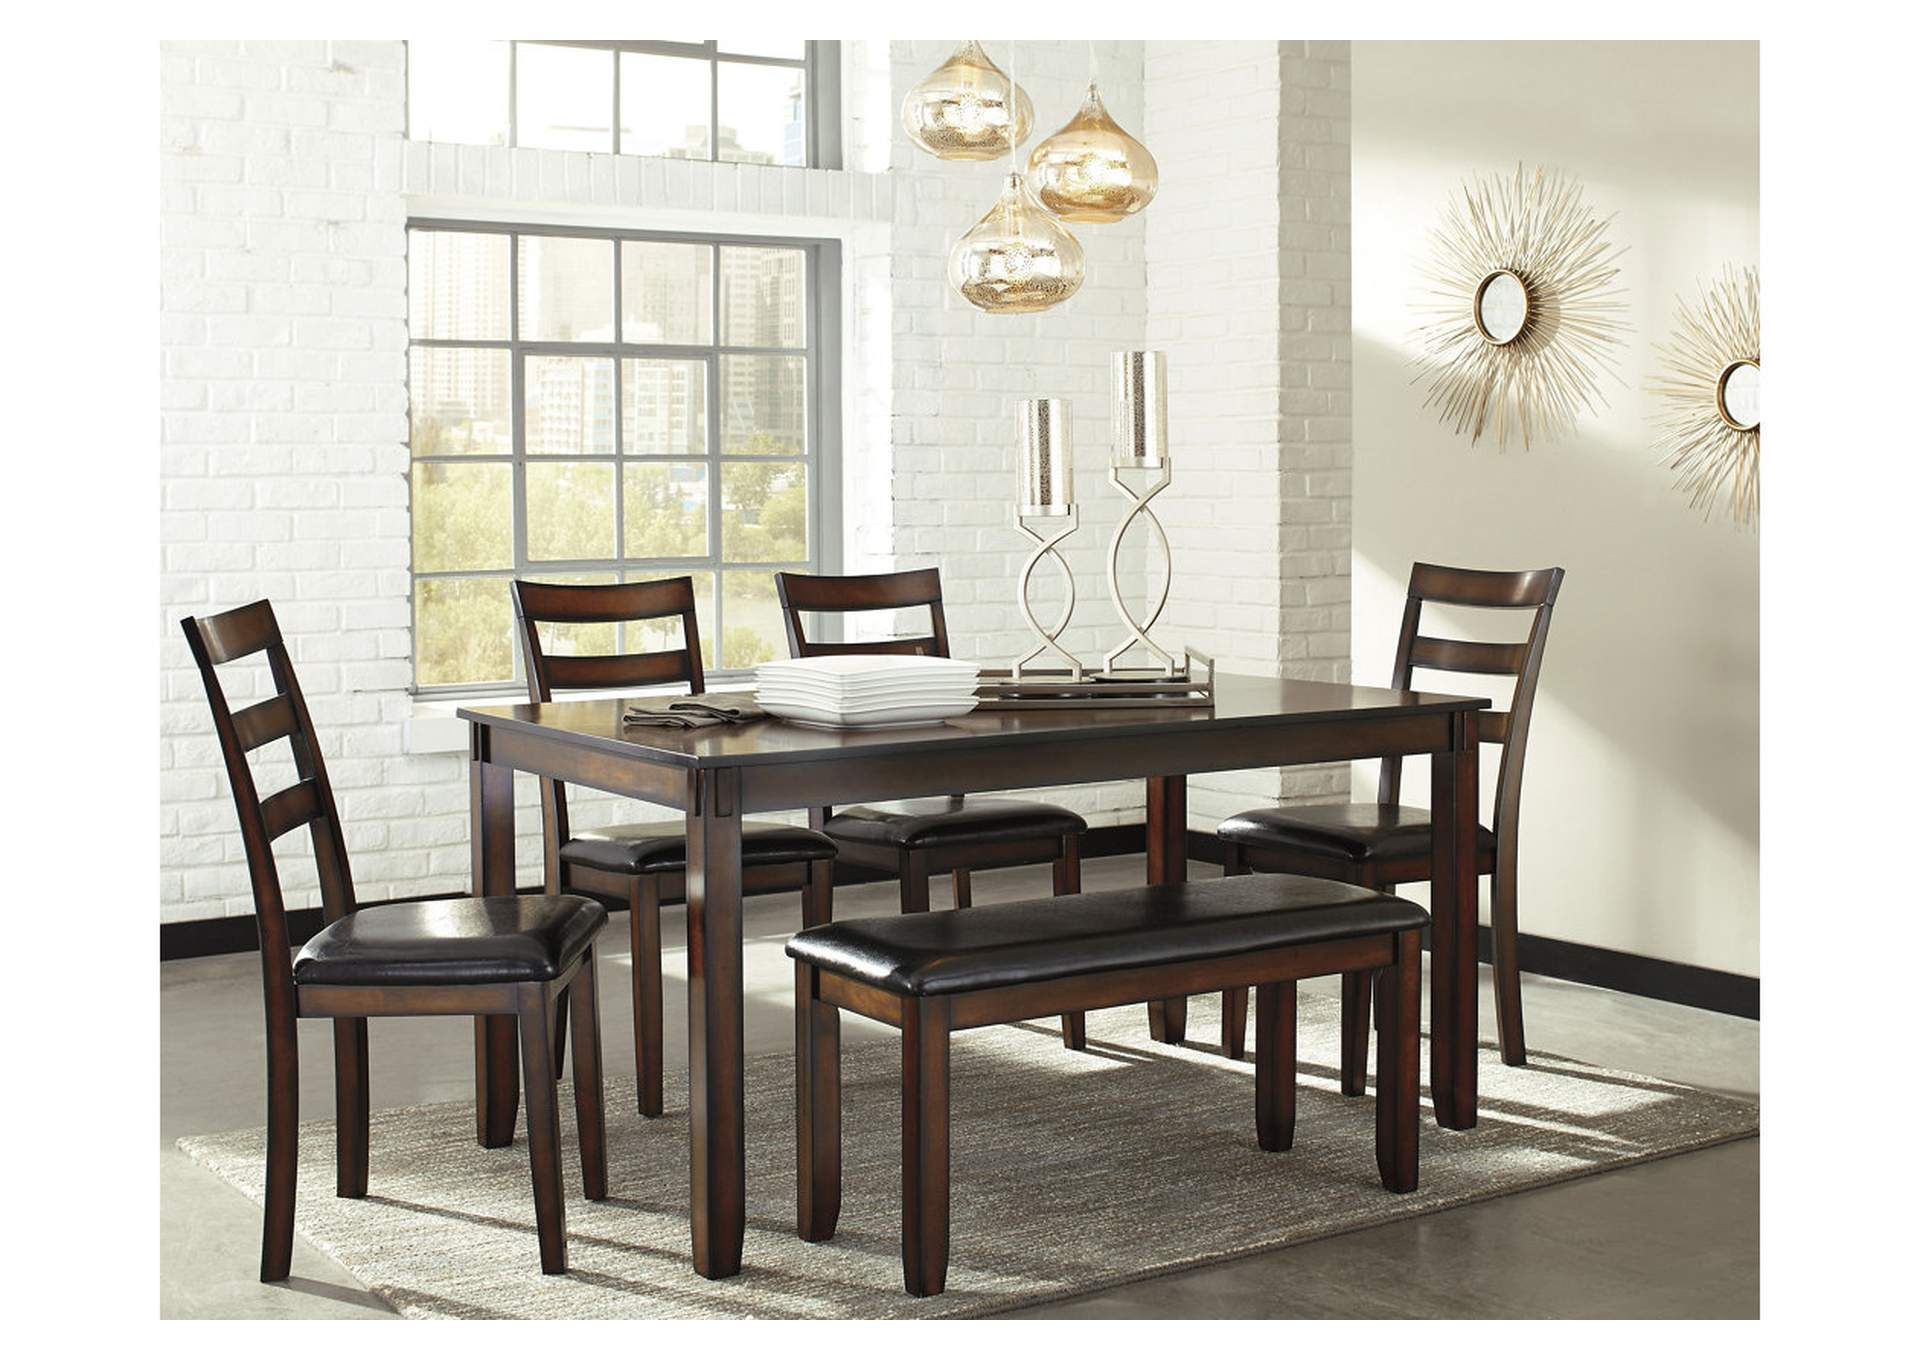 Coviar Brown Dining Room Table Set,Signature Design By Ashley